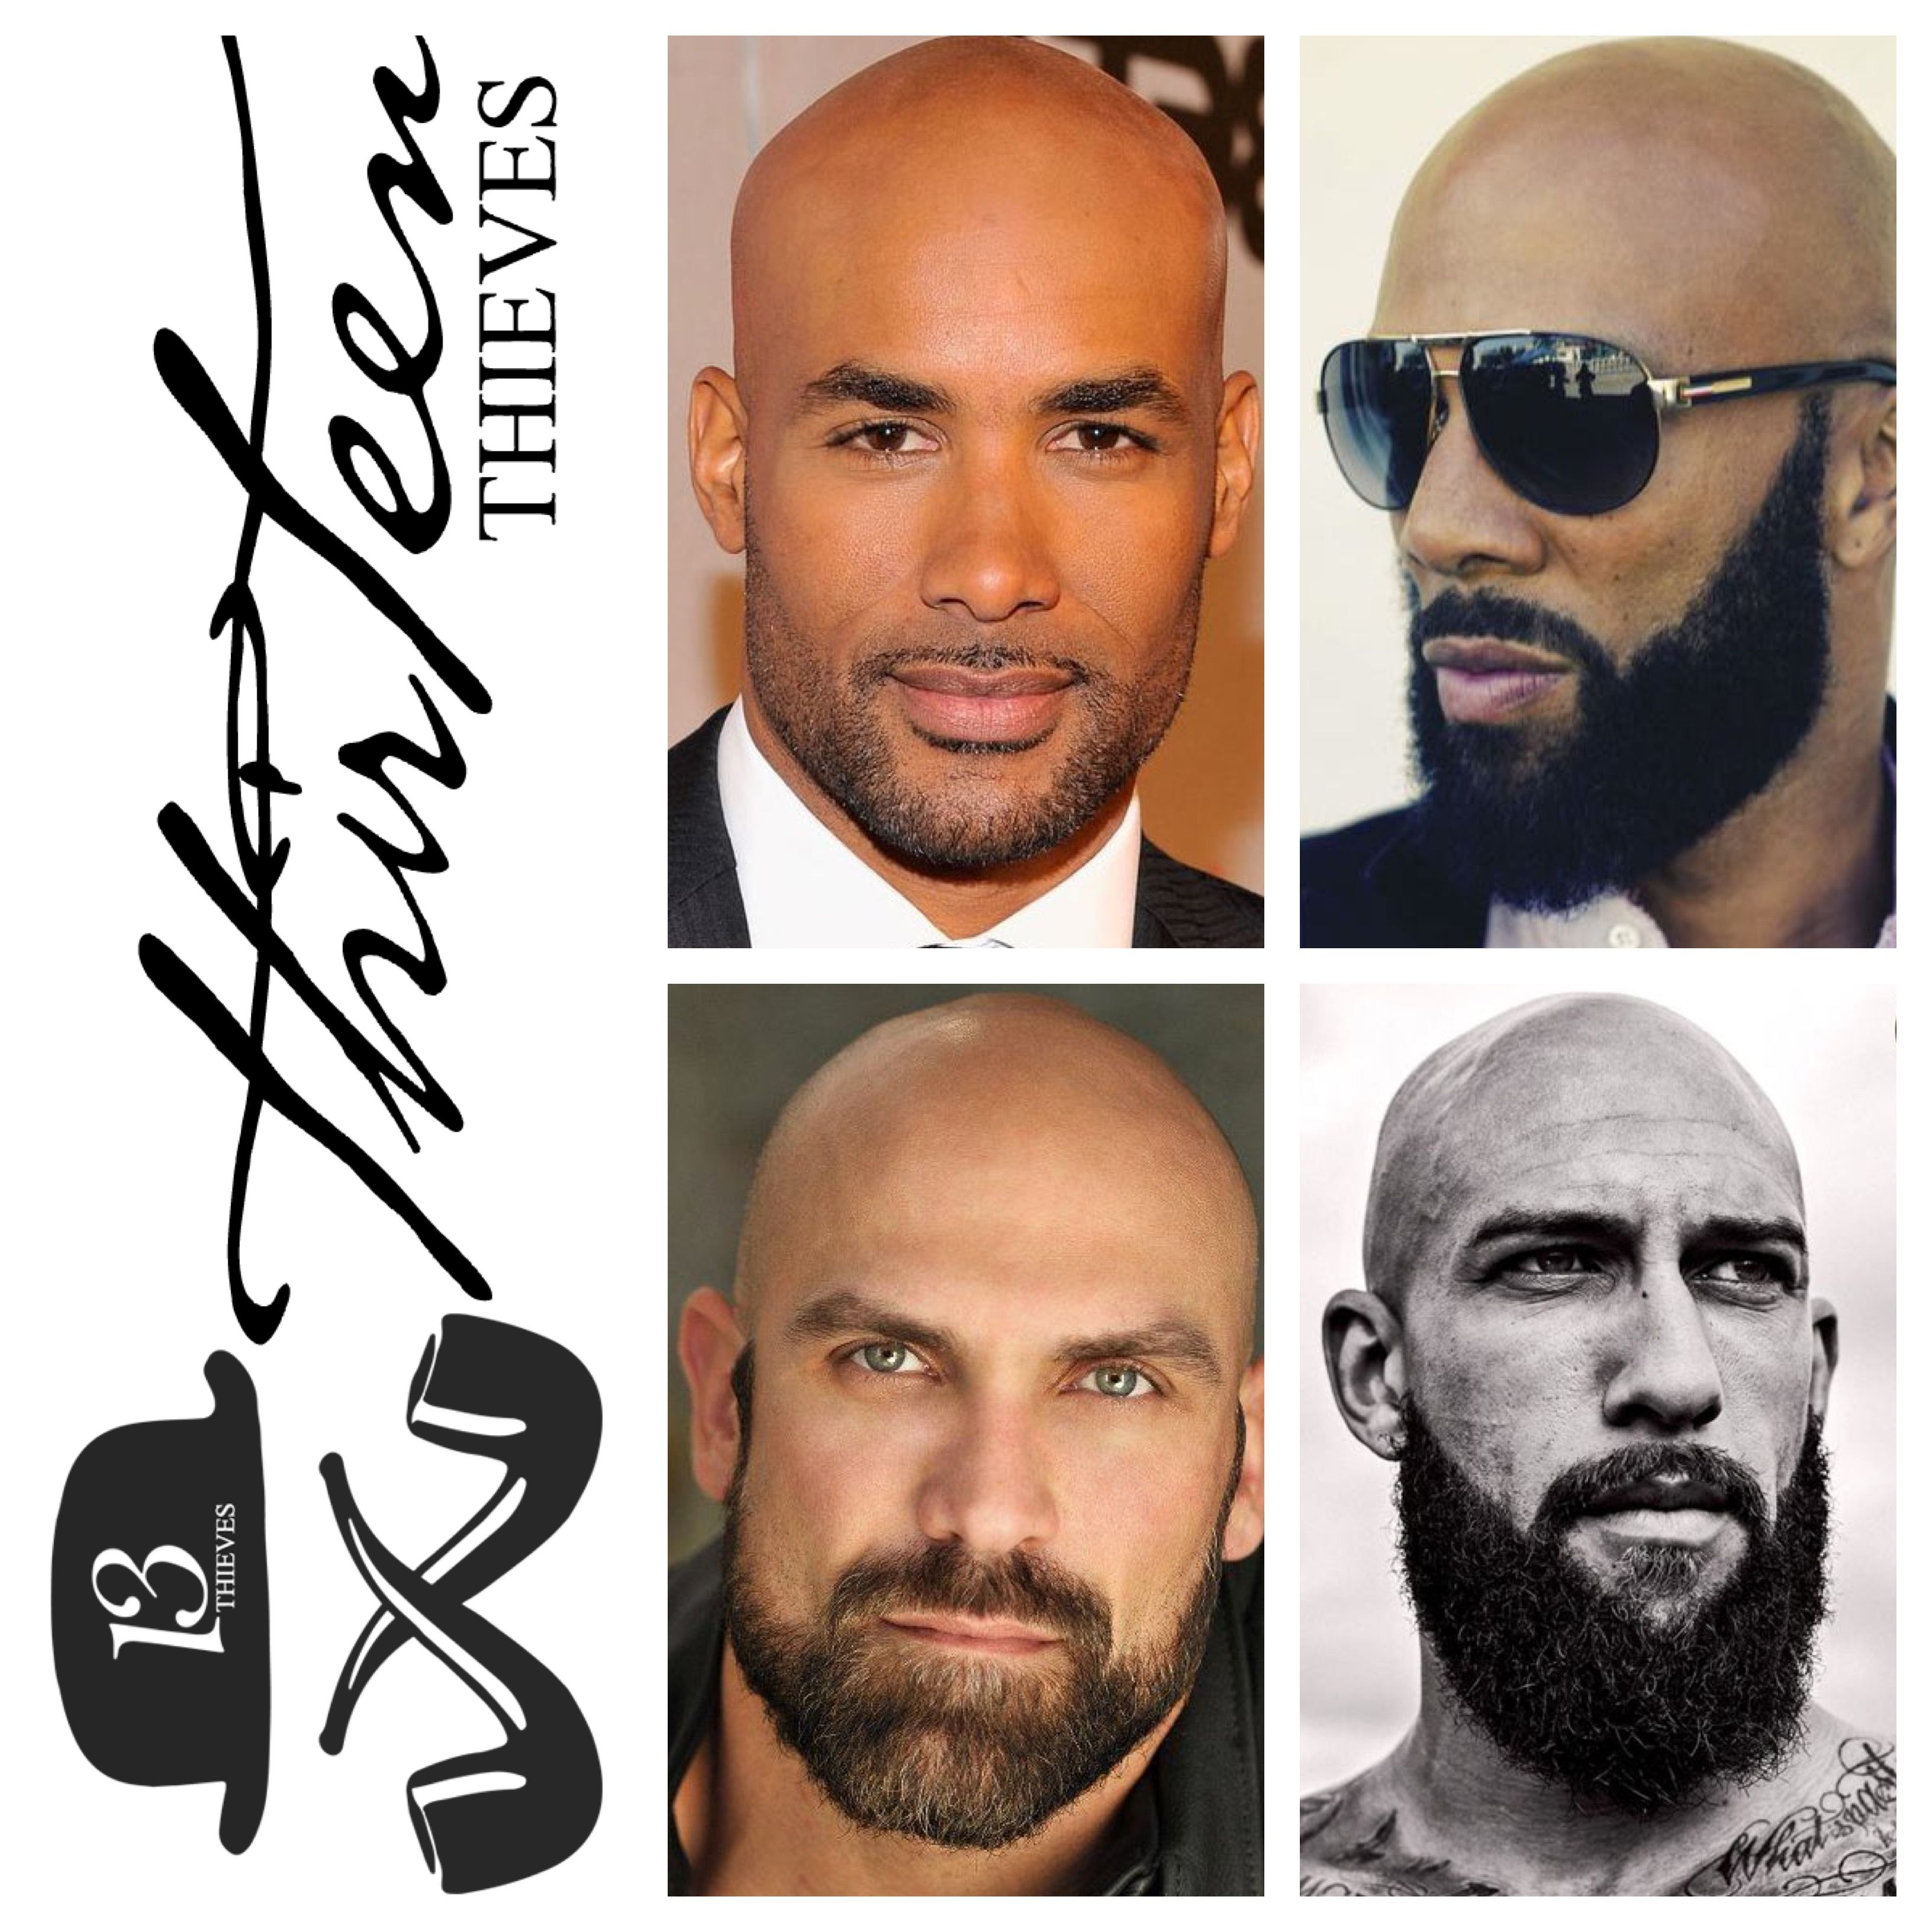 Bald With A Beard Is A Combination That Works At Every Length